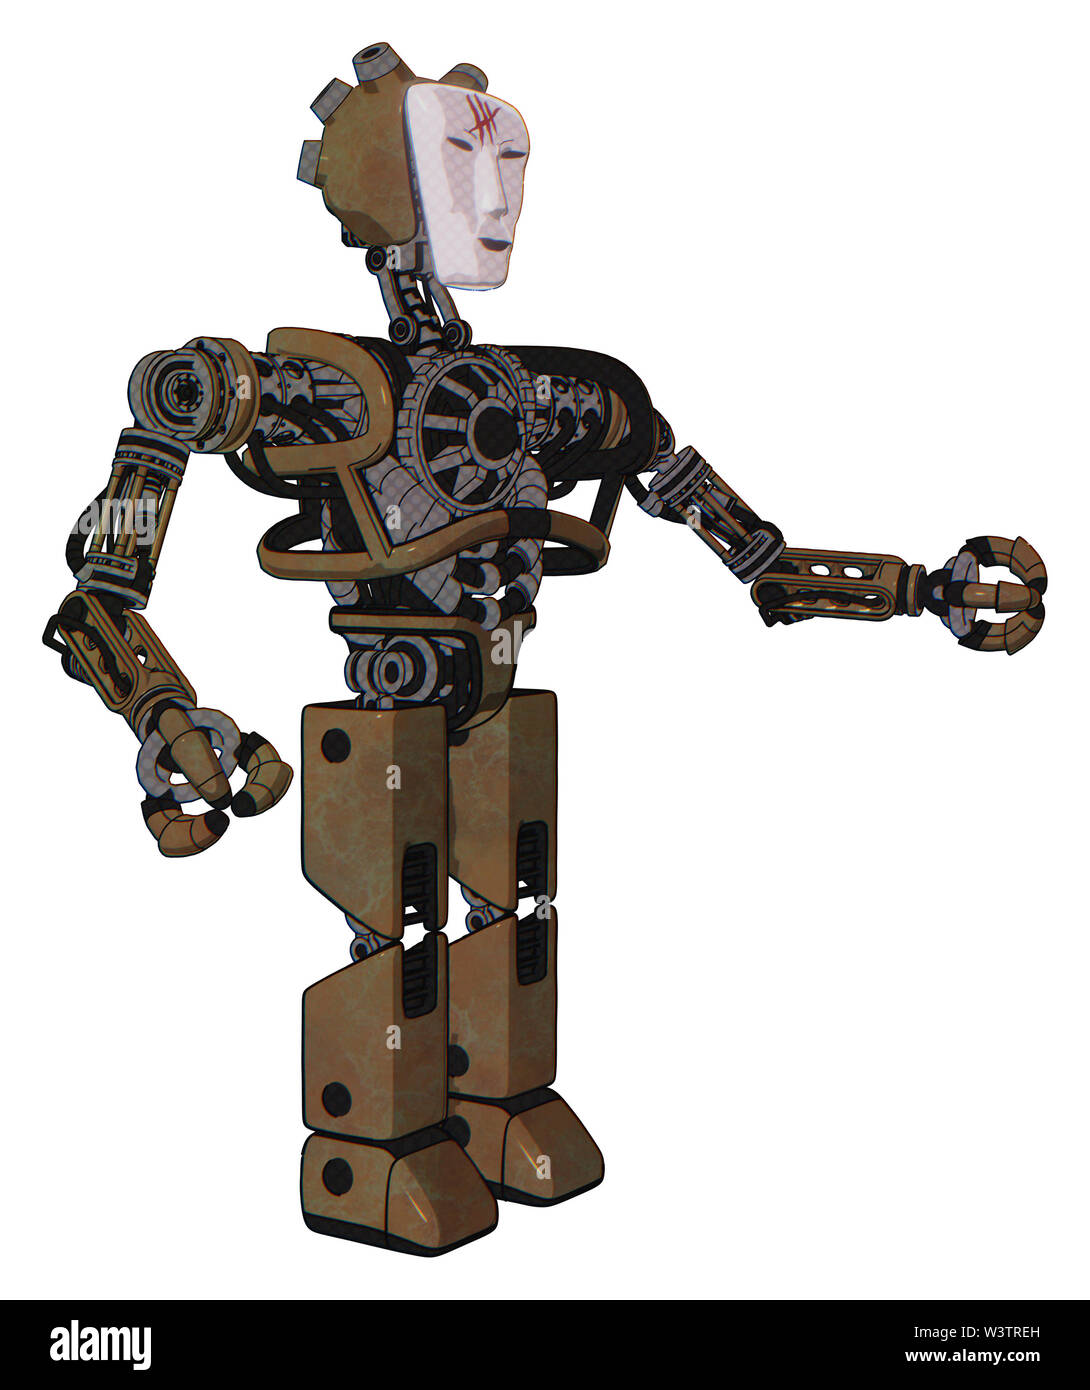 Bot containing elements: humanoid face mask, red slashes war paint, heavy upper chest, no chest plating, prototype exoplate legs. Material: old... Stock Photo